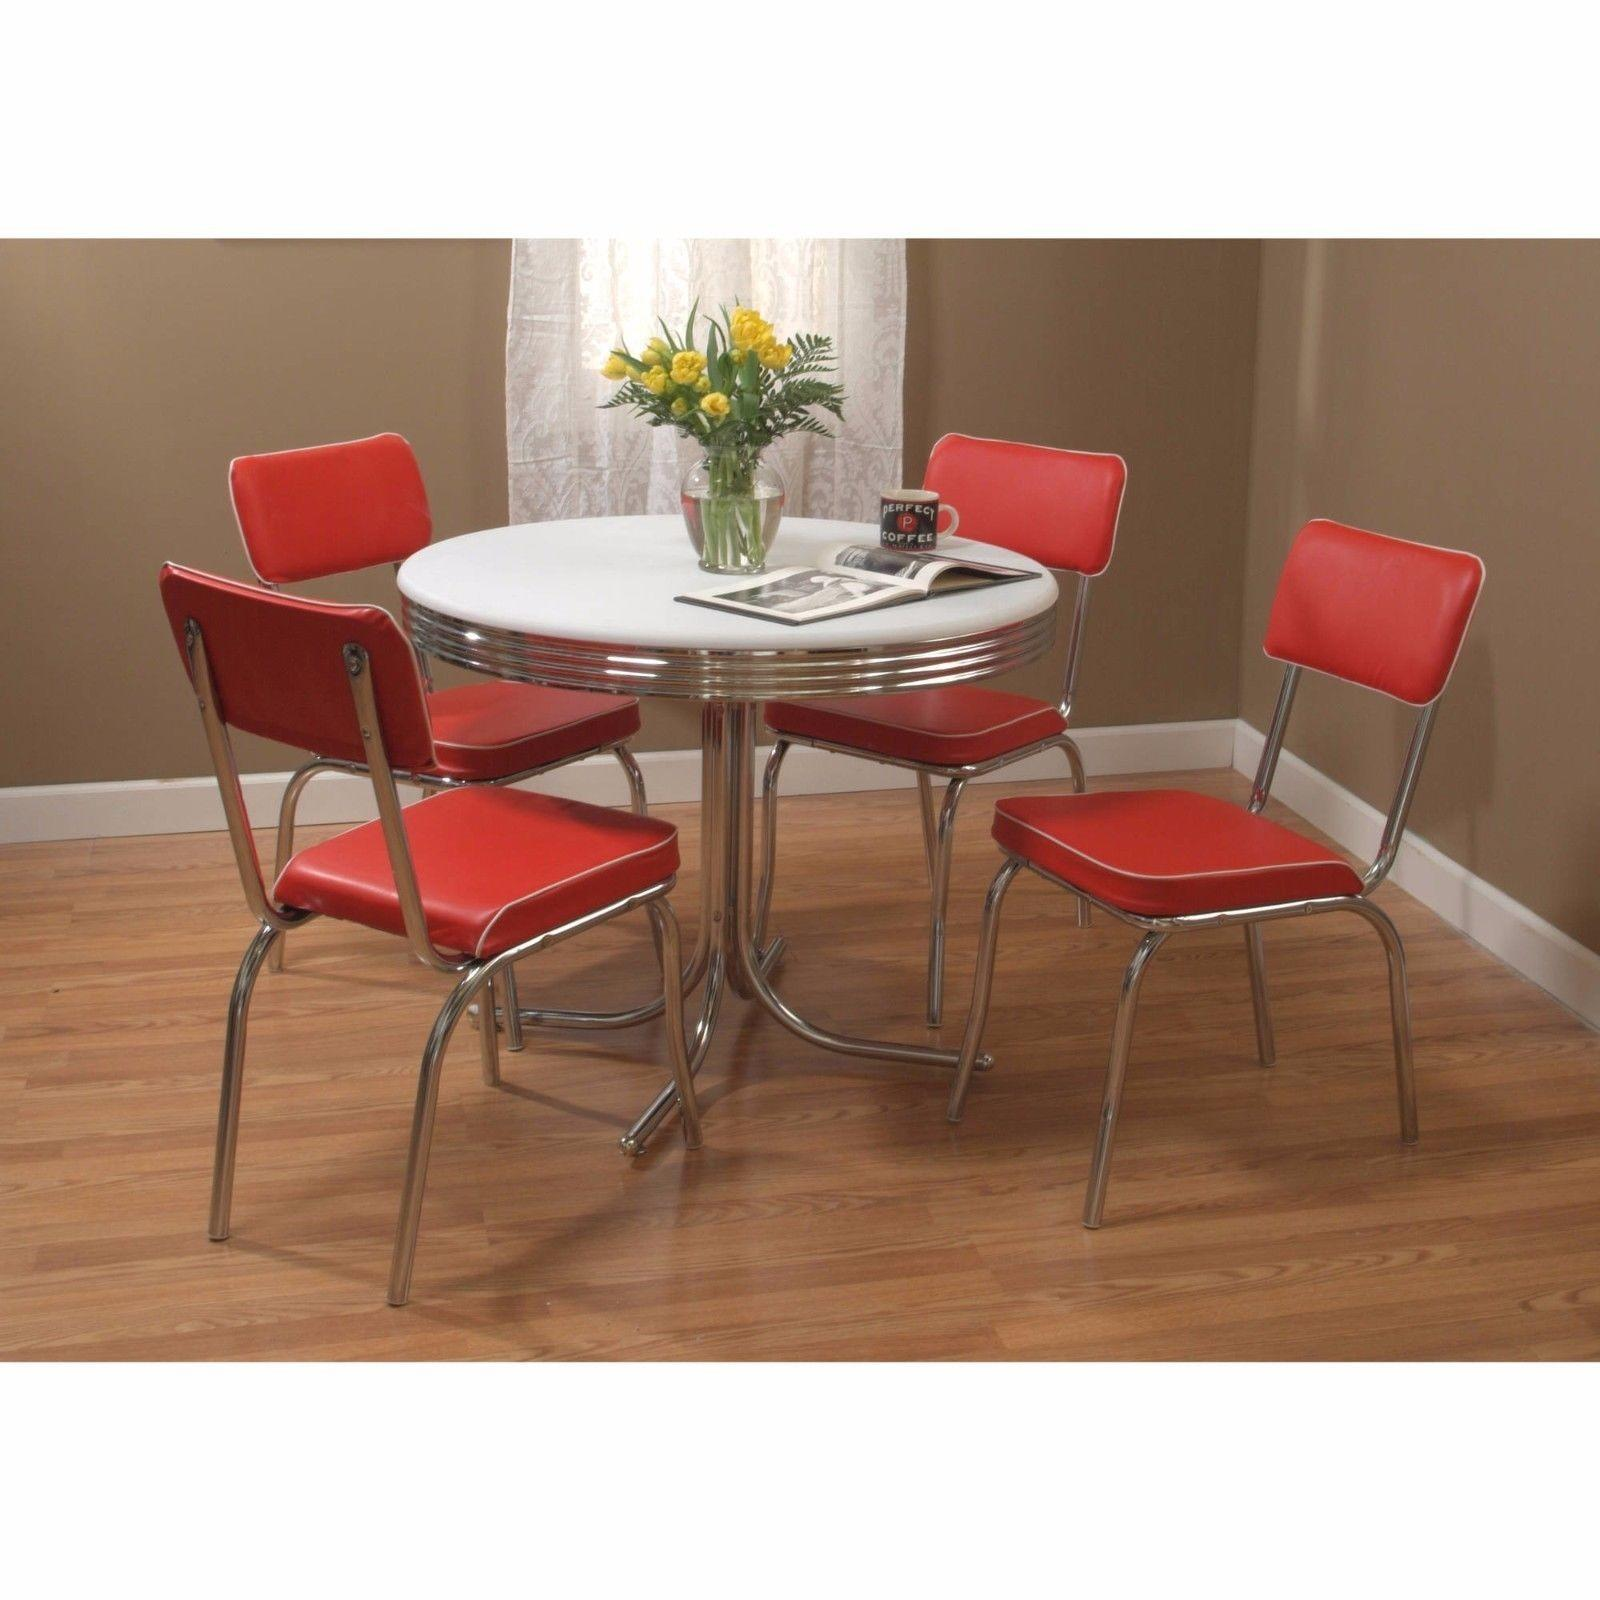 Retro Dining Room Furniture Set Vintage Diner Table